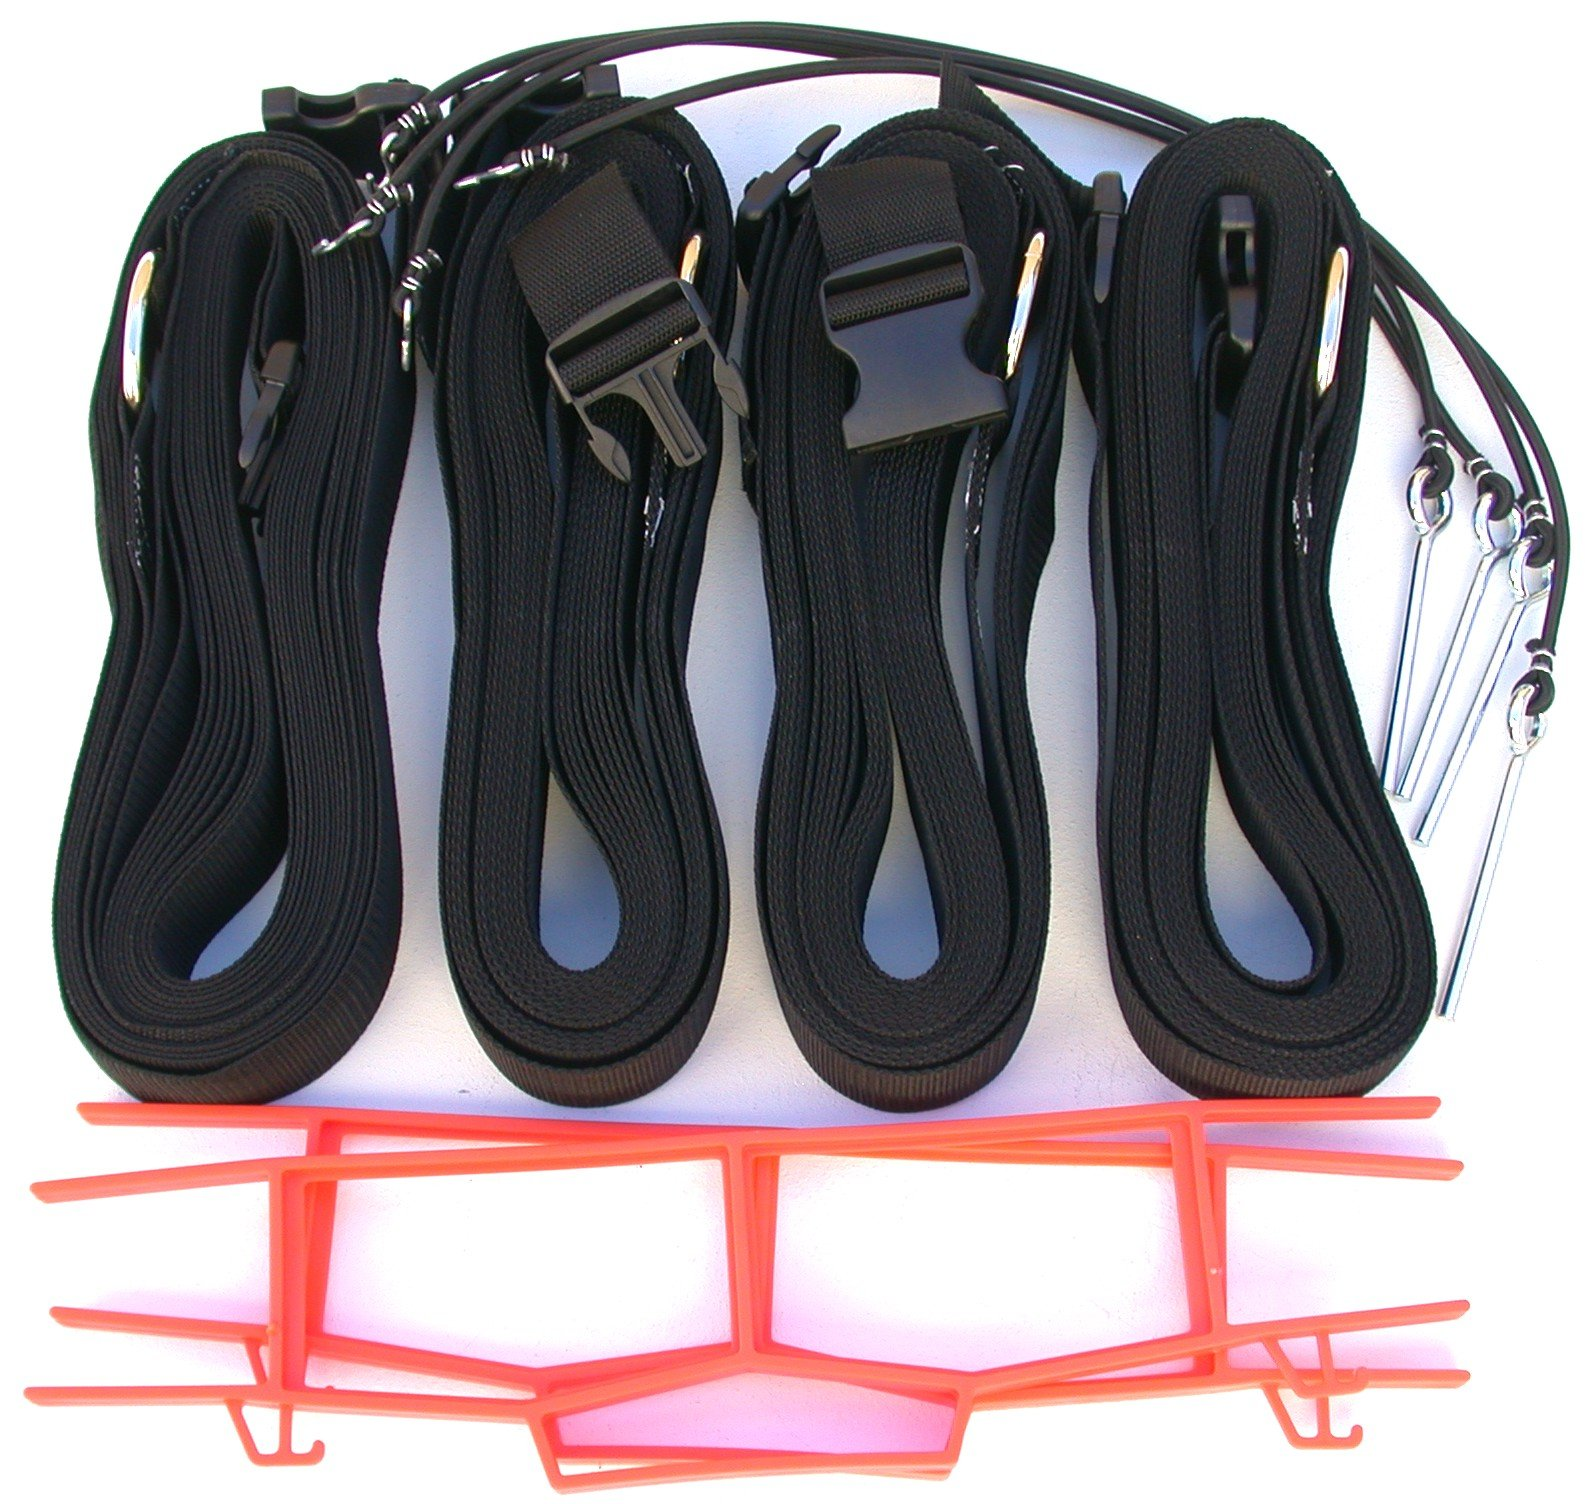 Home Court 19 AG Volleyball Adjustable Boundary Webbing, Black by Home Court (Image #1)